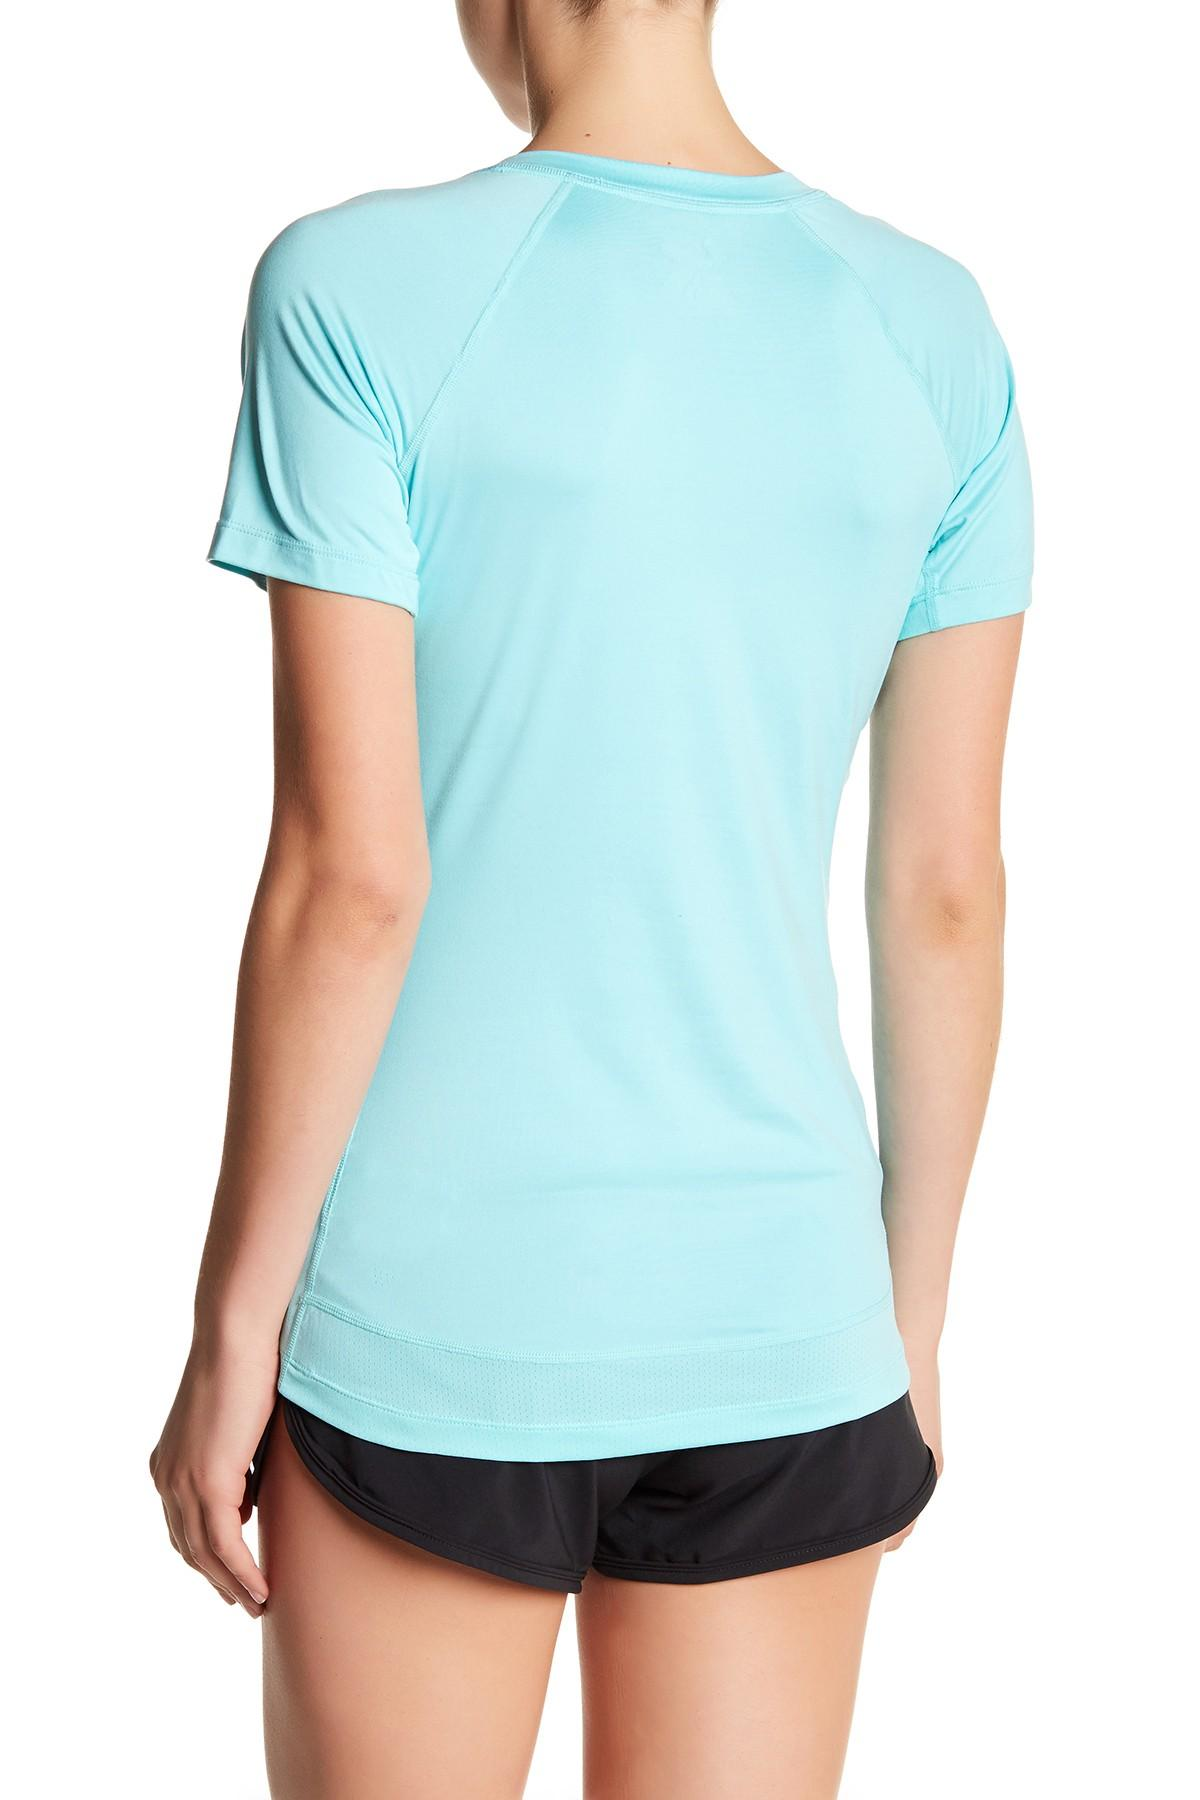 Asics-NEW-Solid-Hue-Women-039-s-V-Neck-Performance-ASX-Dry-T-Shirt-Top-38 thumbnail 3